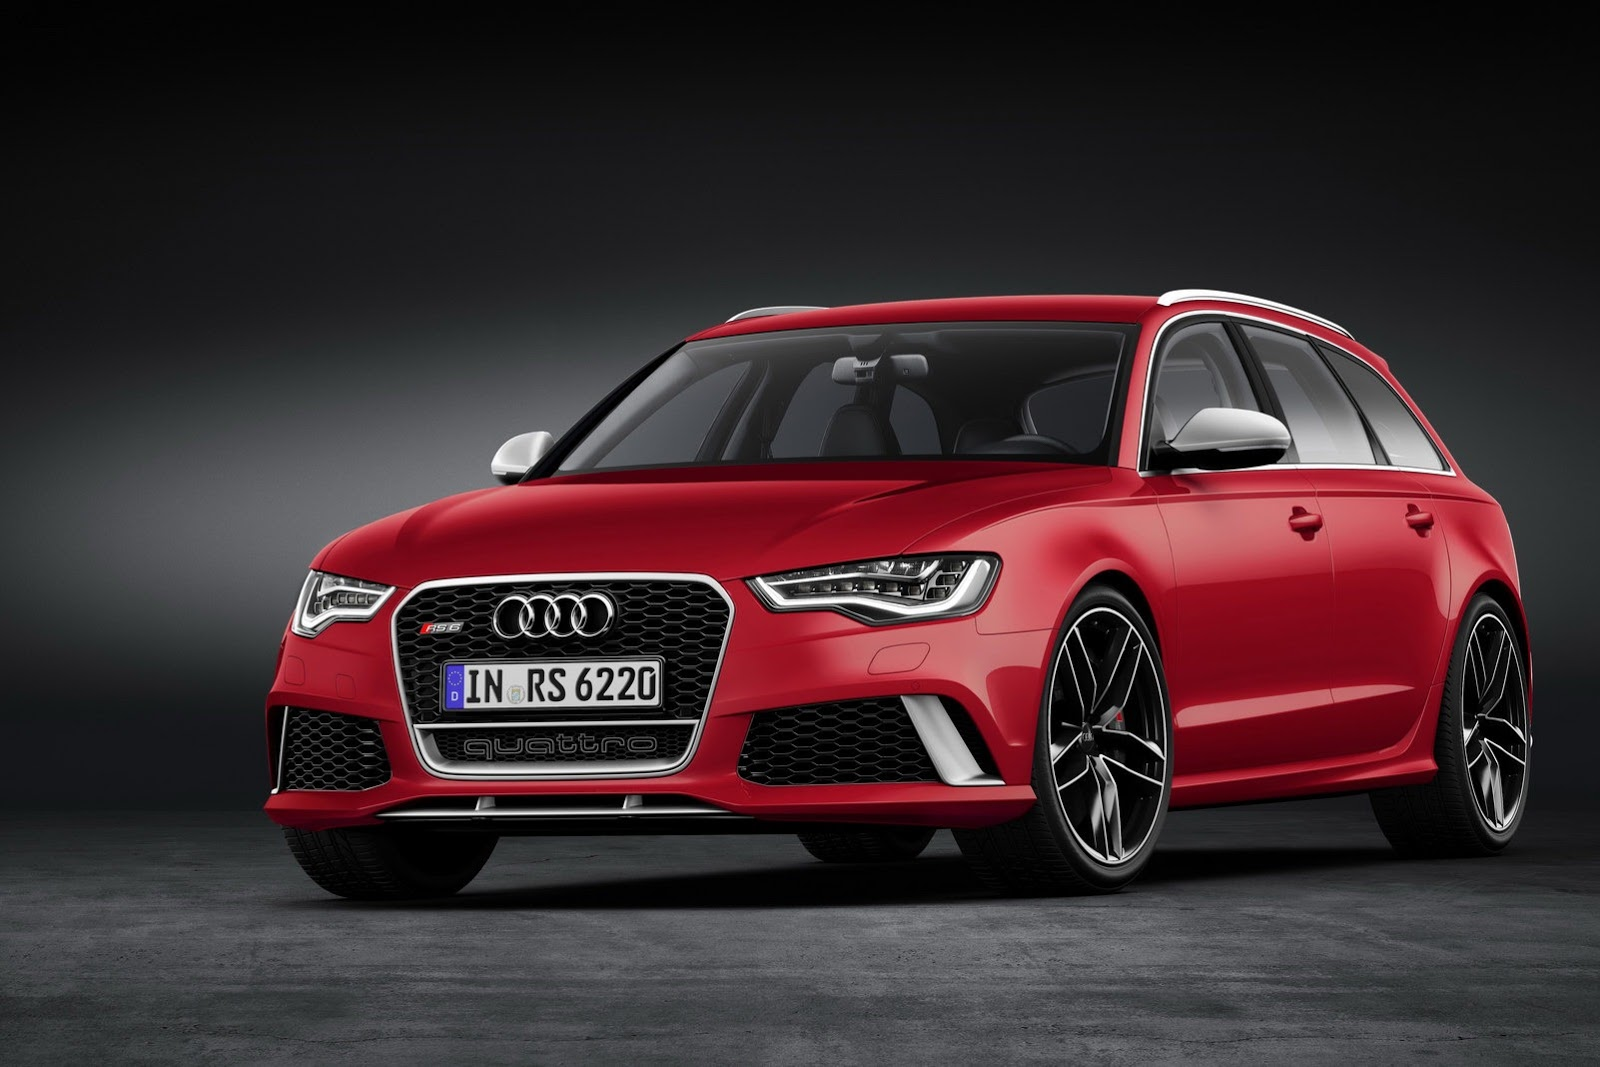 2014 Audi RS6 Avant Front 7/8 Angle